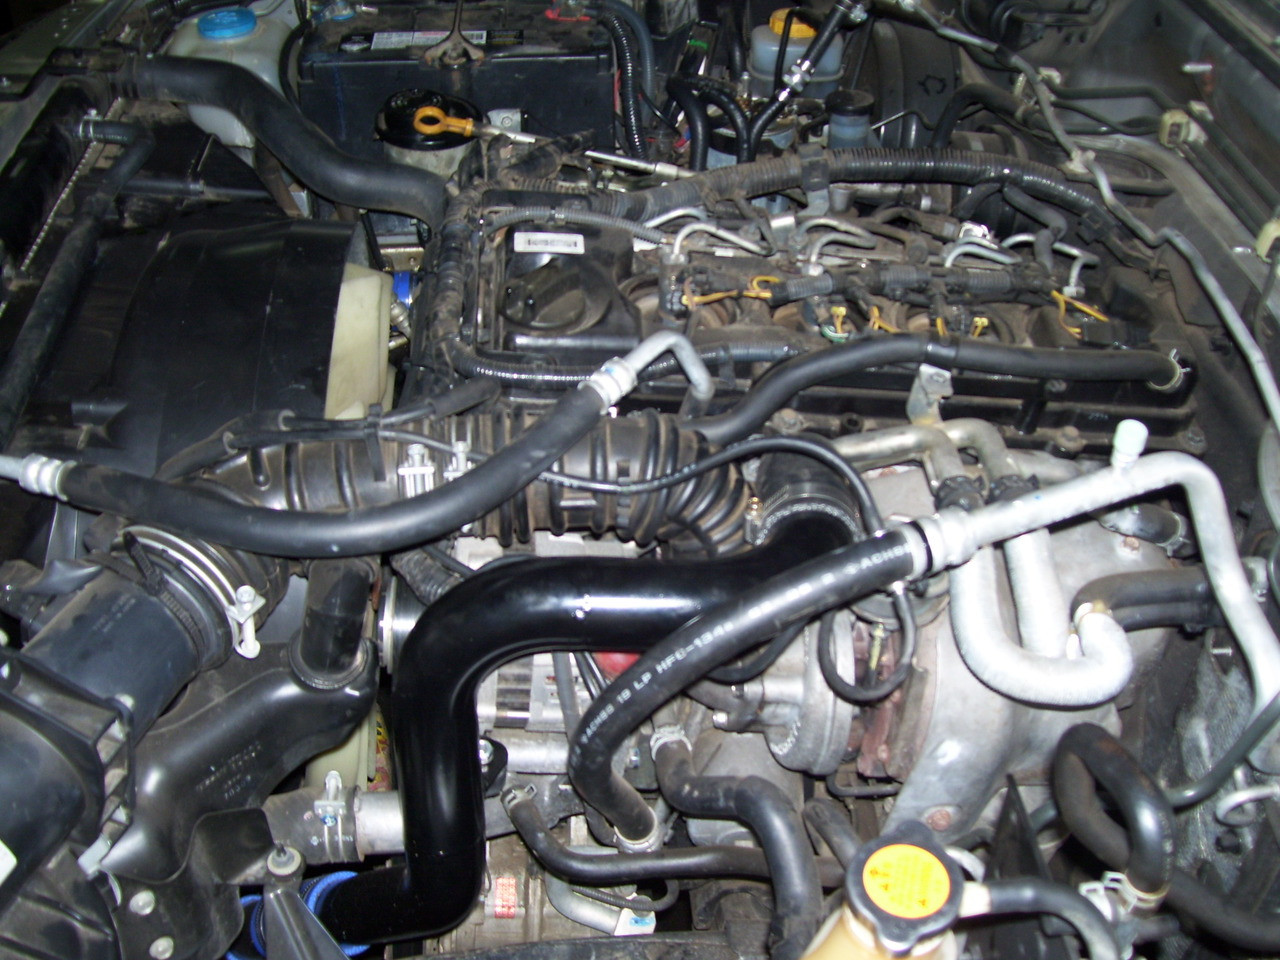 Nissan Patrol - 3 L Common Rail - Intercooler conversion